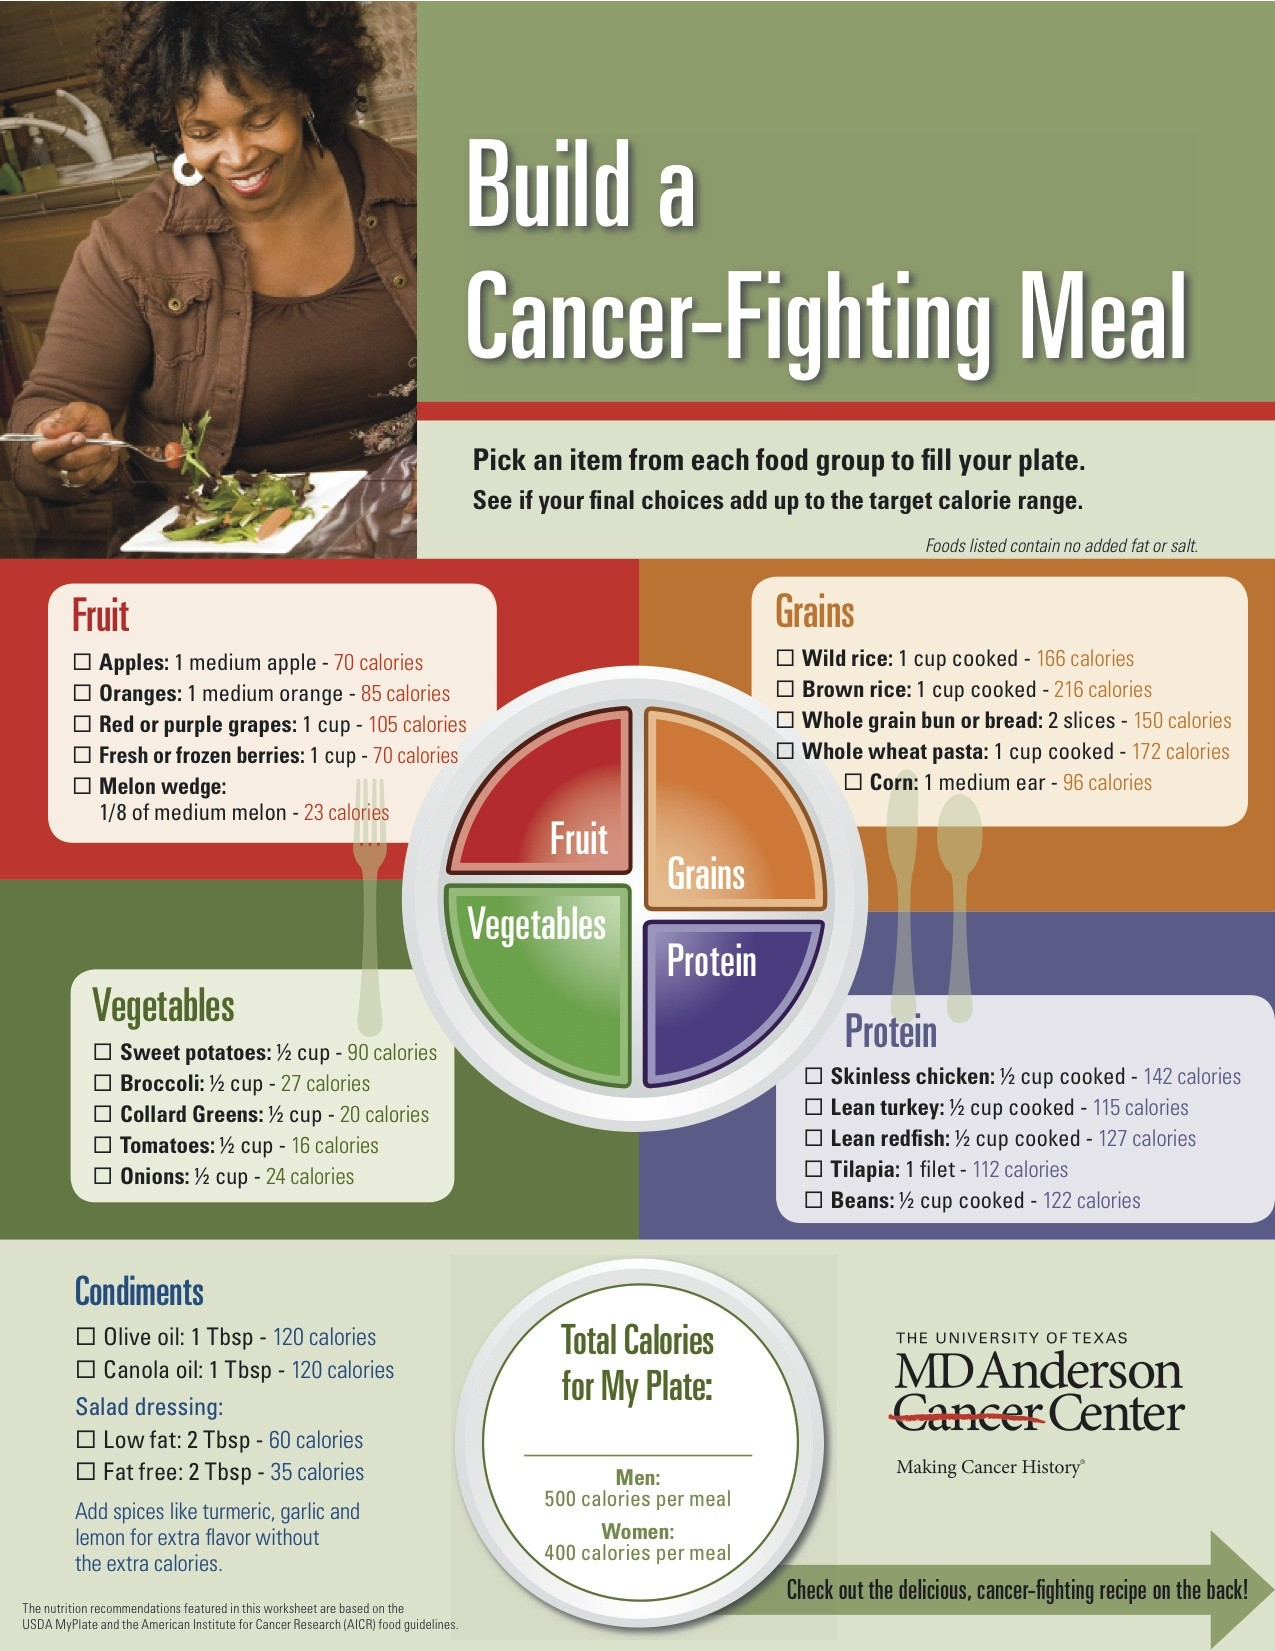 Cancer fighting meal plans aim to curb disparities among minorities cancer fighting meal plans aim to curb disparities among minorities infographic forumfinder Gallery